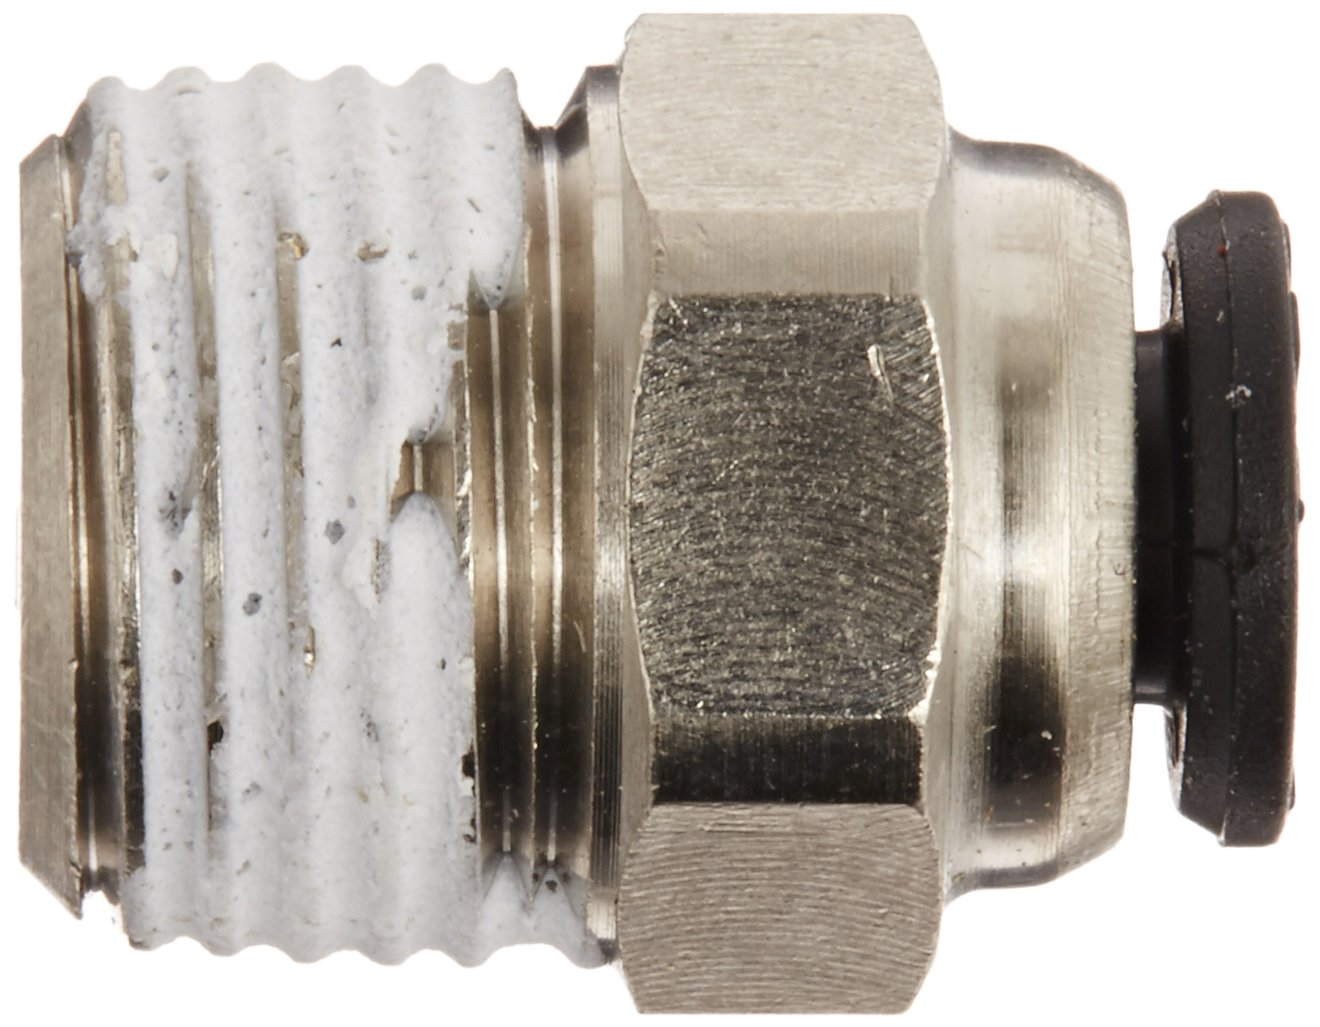 Legris 3175 53 10 Nickel-Plated Brass Push-to-Connect Fitting Inline Connector 1//8 Tube OD x 1//8 BSPT Male